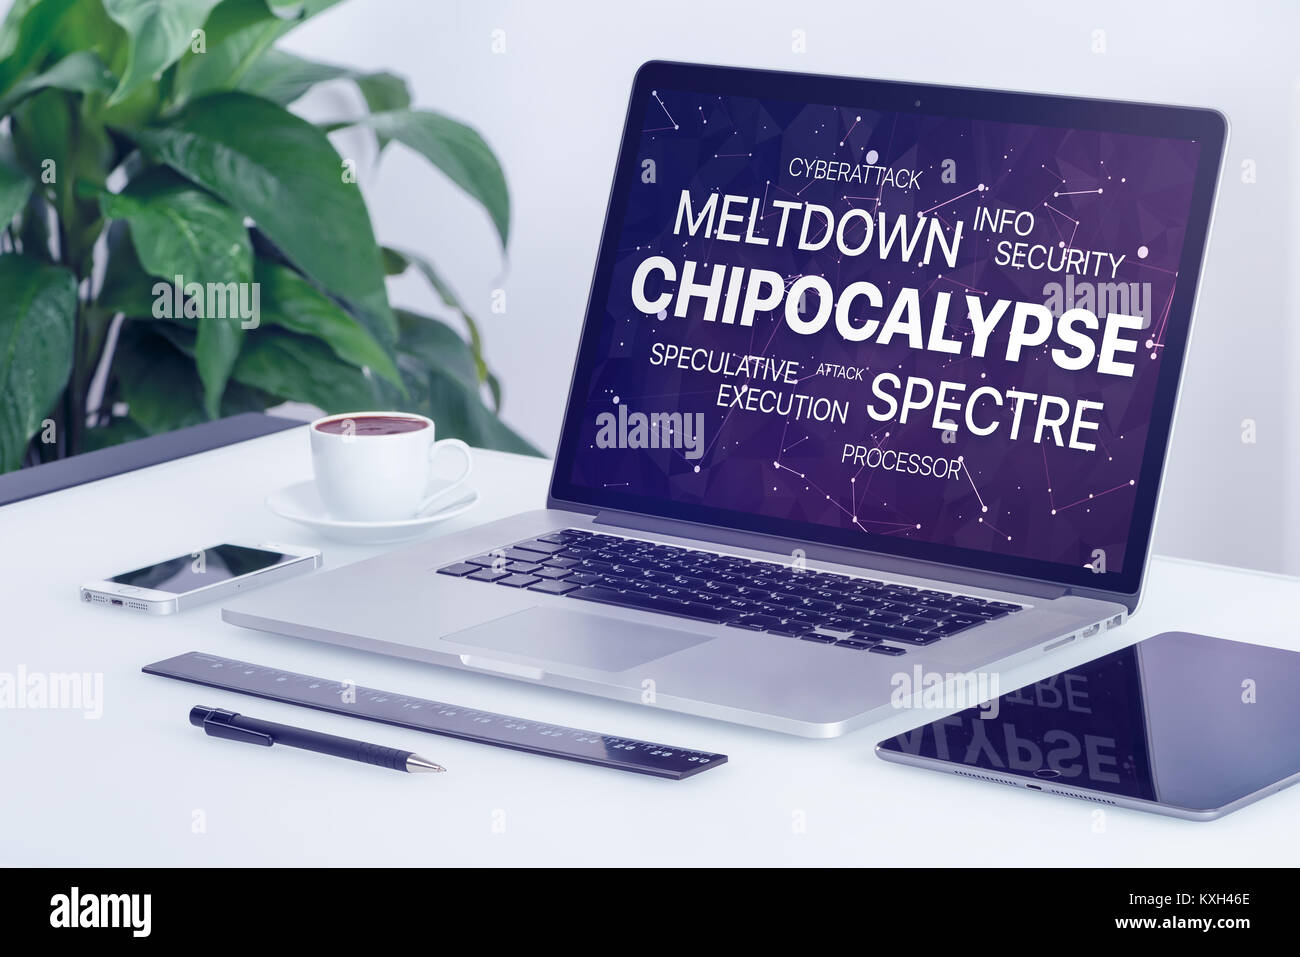 Chipocalypse concept with meltdown and spectre threat word cloud on laptop screen. - Stock Image